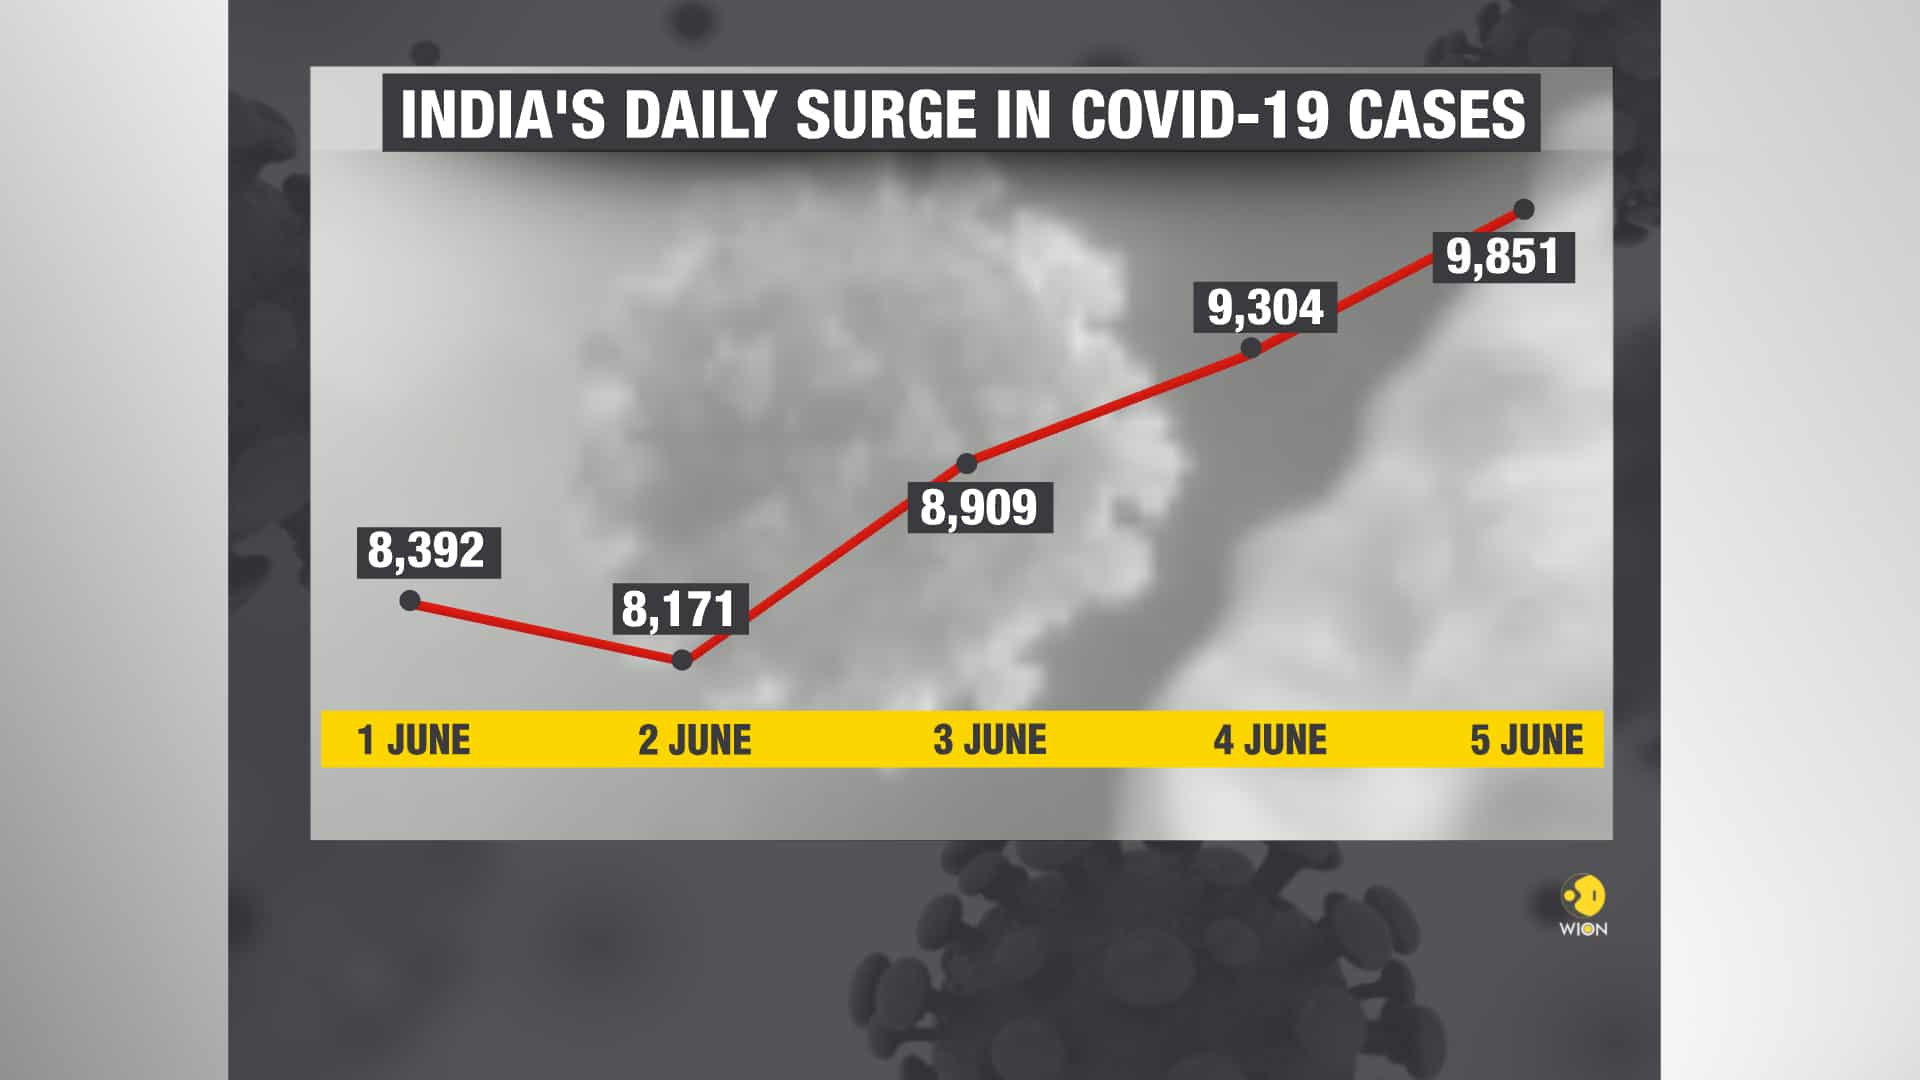 Coronavirus: India's tally 'modest' but number of cases could explode, warns WHO